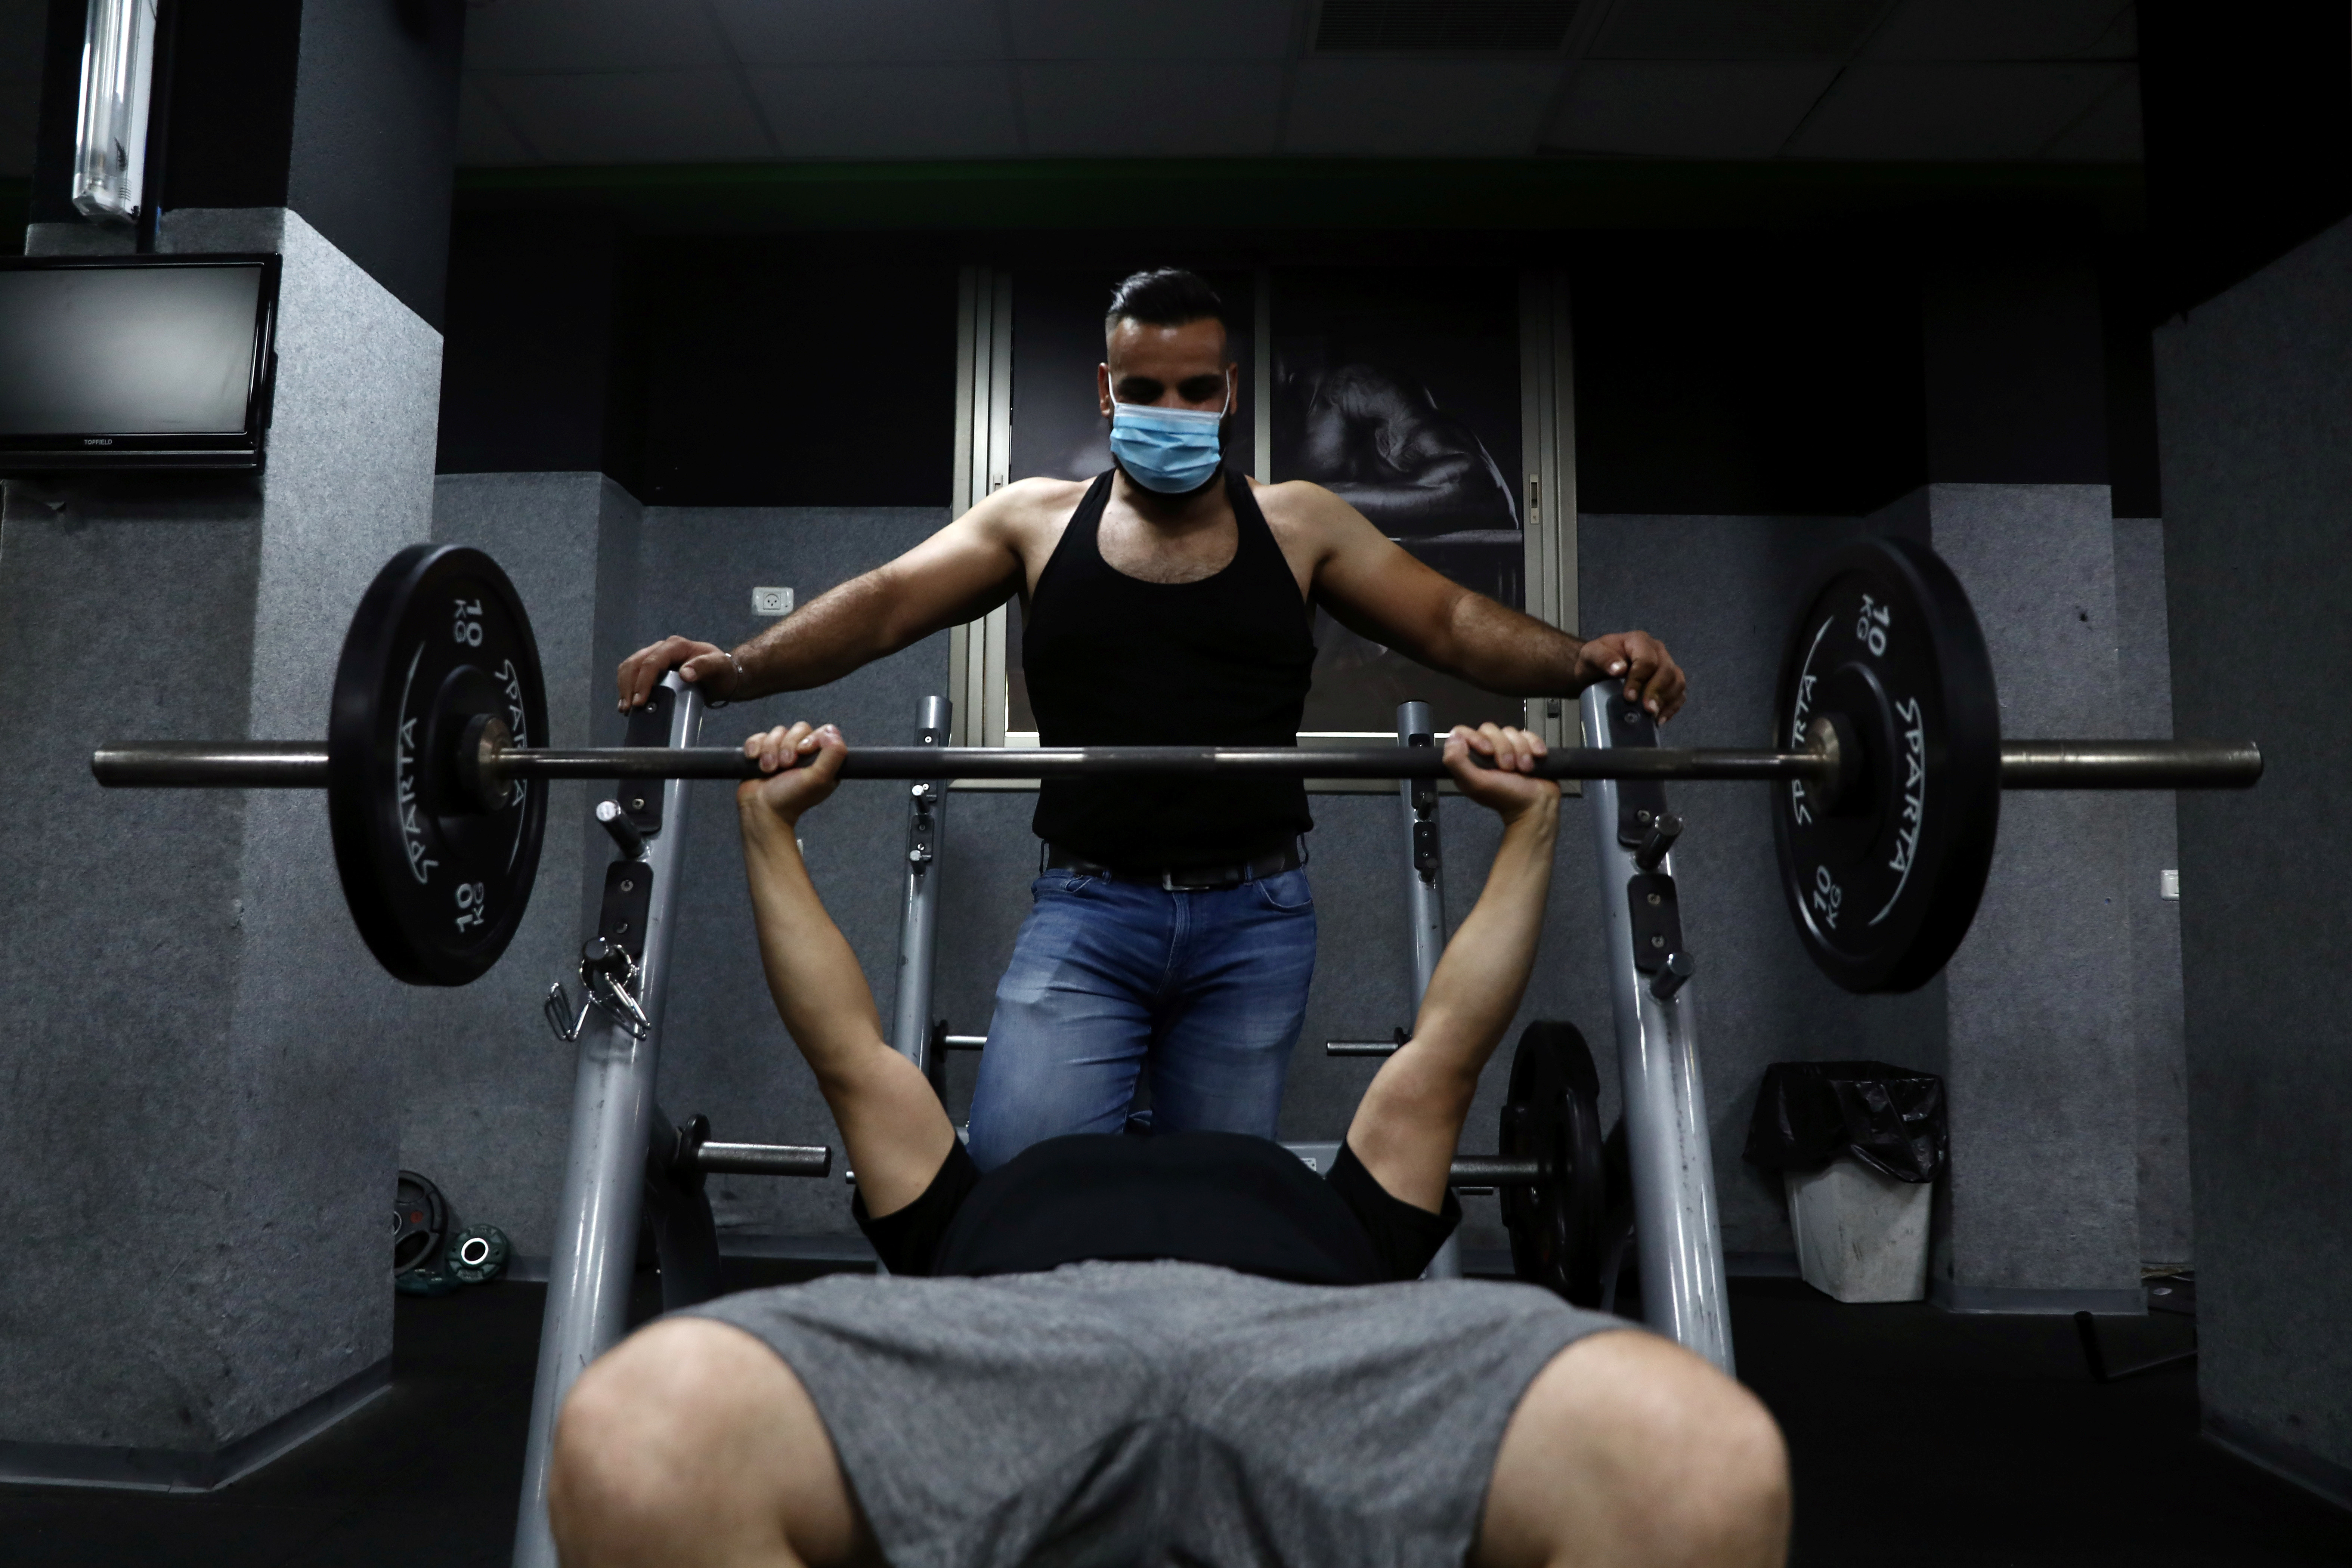 People exercise in a gym amid the spread of the coronavirus disease (COVID-19), in East Jerusalem July 6, 2020. REUTERS/Ammar Awad - RC2SNH9YDNA6